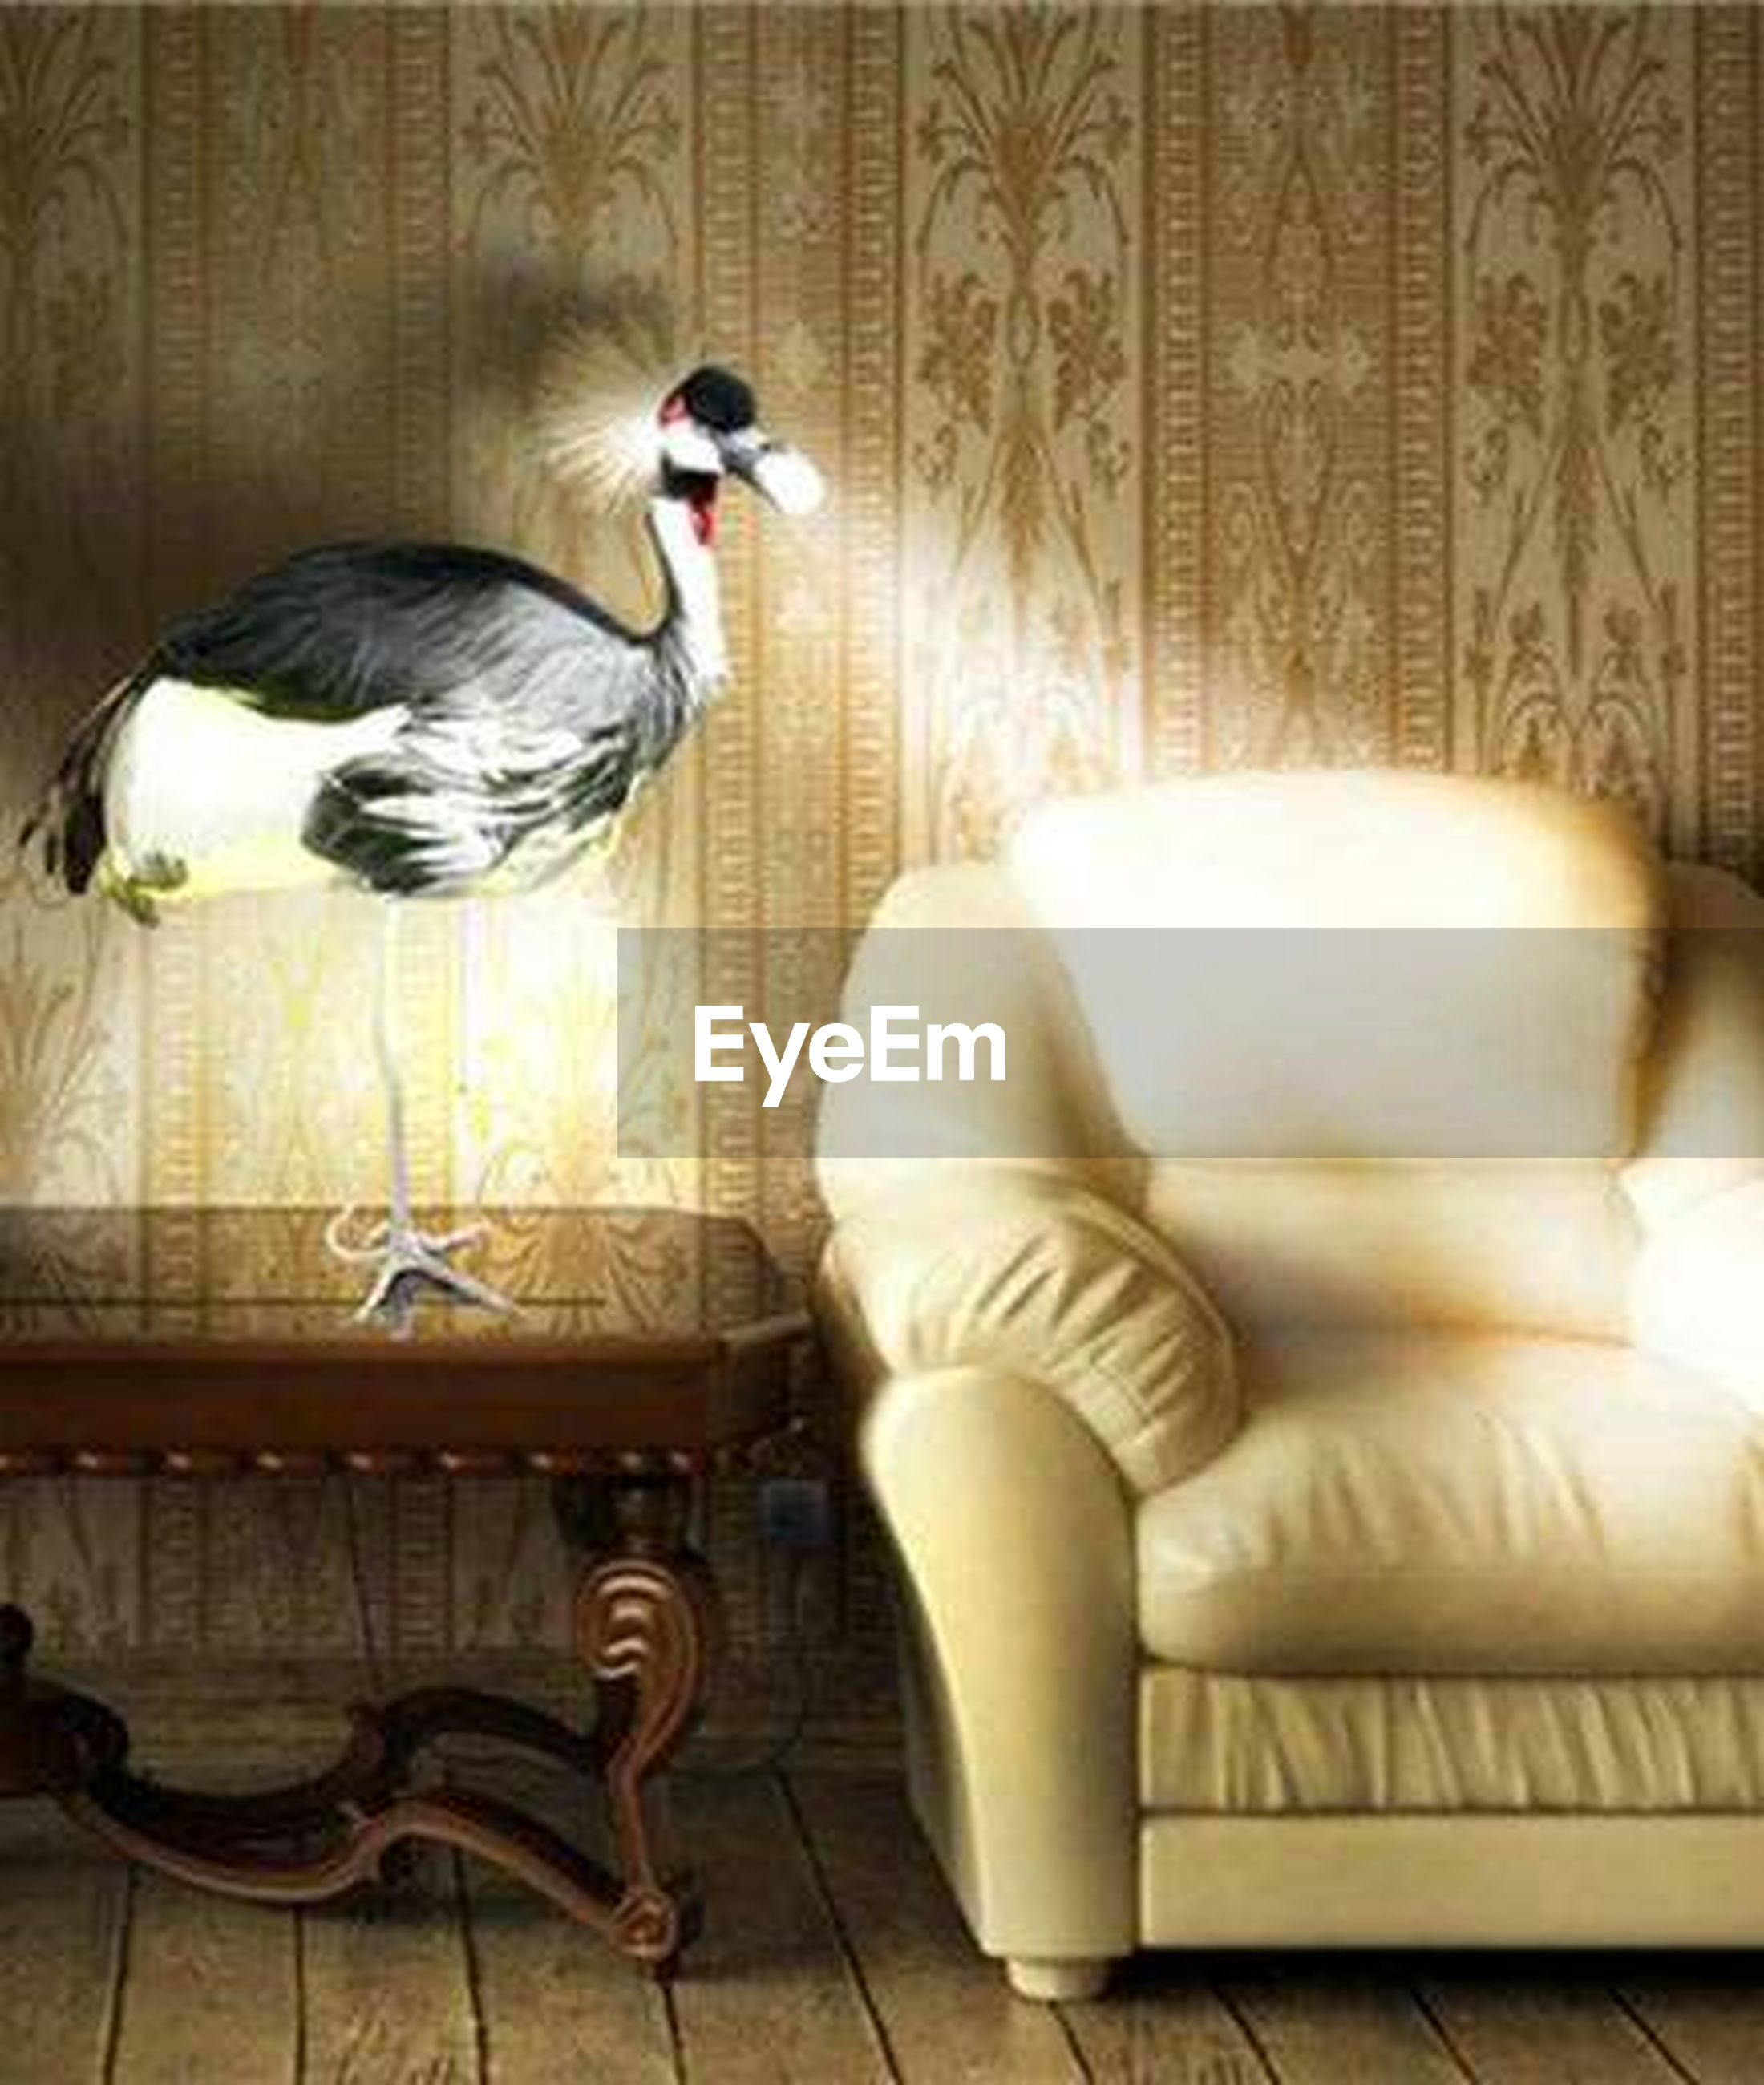 animal themes, bird, indoors, one animal, animals in the wild, wildlife, perching, wood - material, no people, two animals, relaxation, high angle view, day, chair, full length, table, flooring, pigeon, close-up, wall - building feature